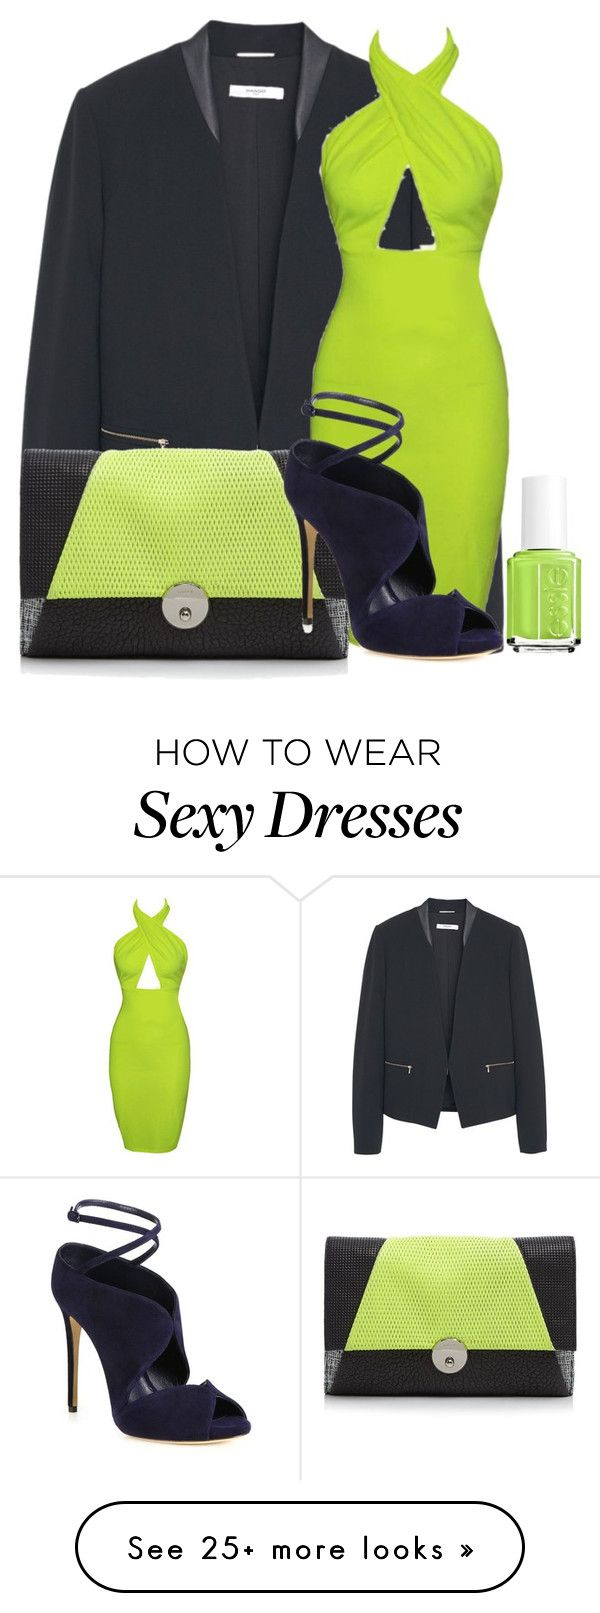 """lime dress"" by missgirlgiuli on Polyvore featuring MANGO, Essie, Milly, Casadei, women's clothing, women's fashion, women, female, woman and misses"